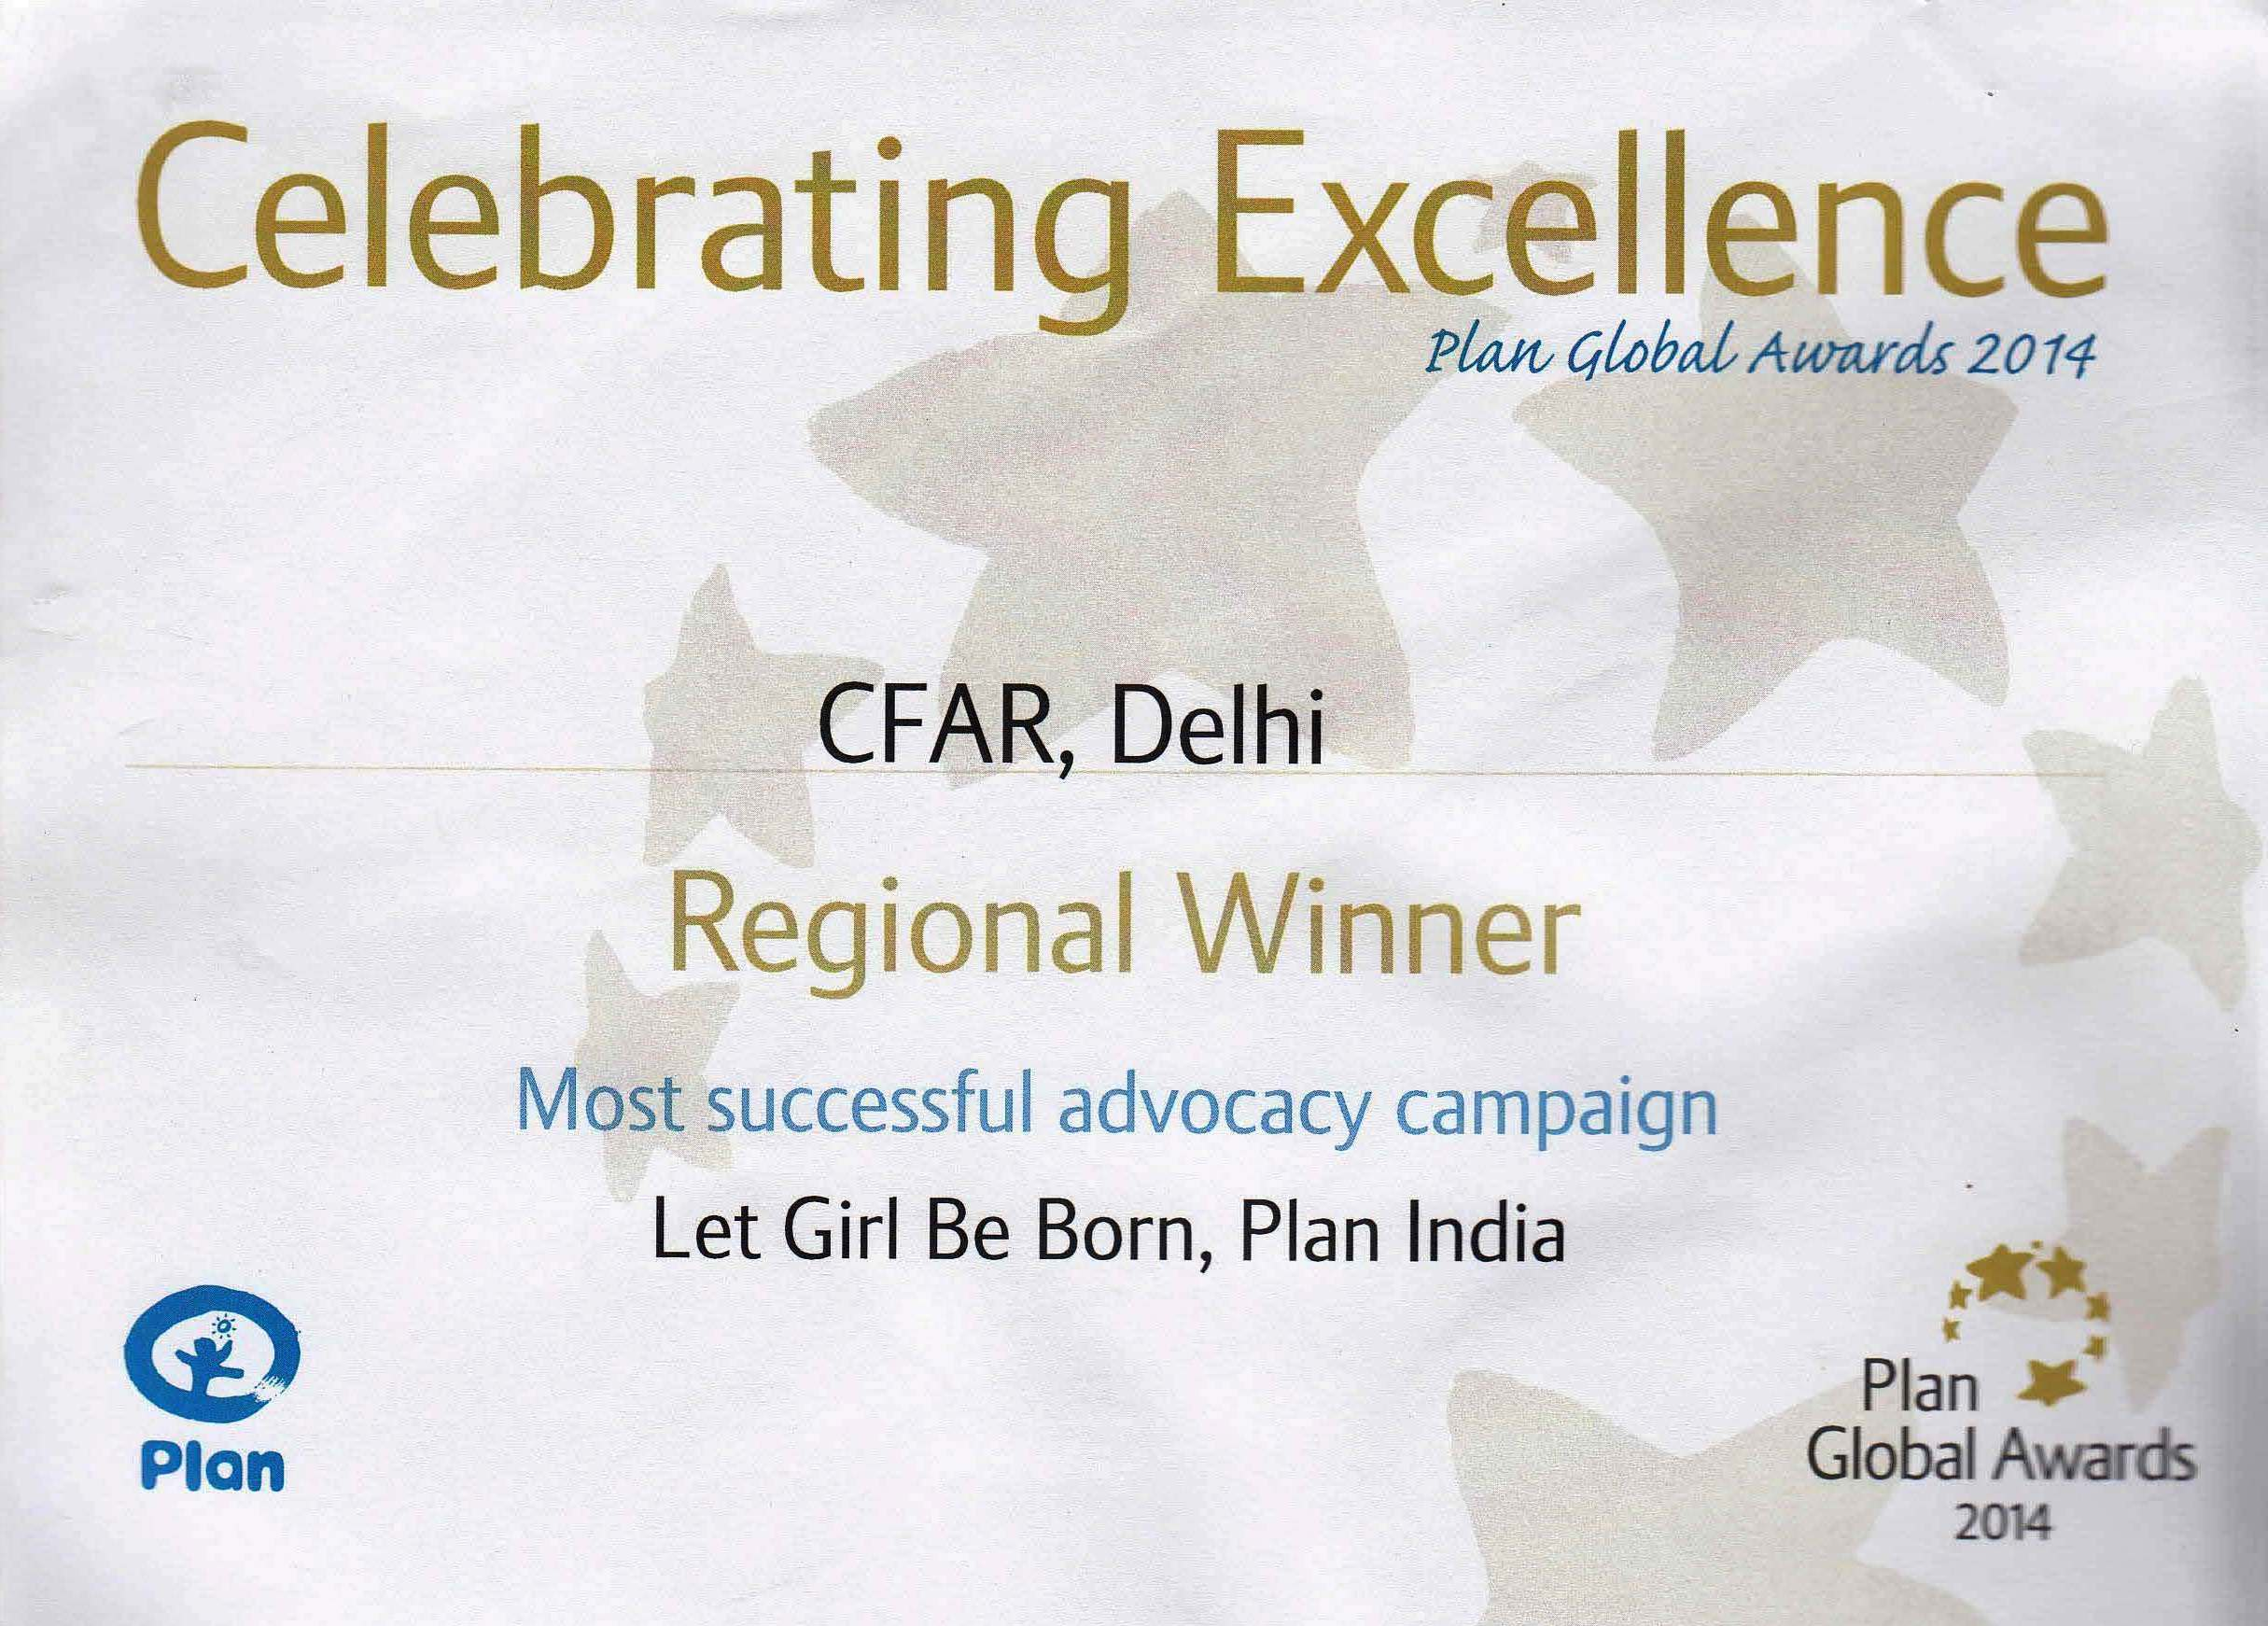 In 2014, CFAR received 'Regional Winner Award from PLAN INDIA' for Implementing Campaign on Let Girls be Born